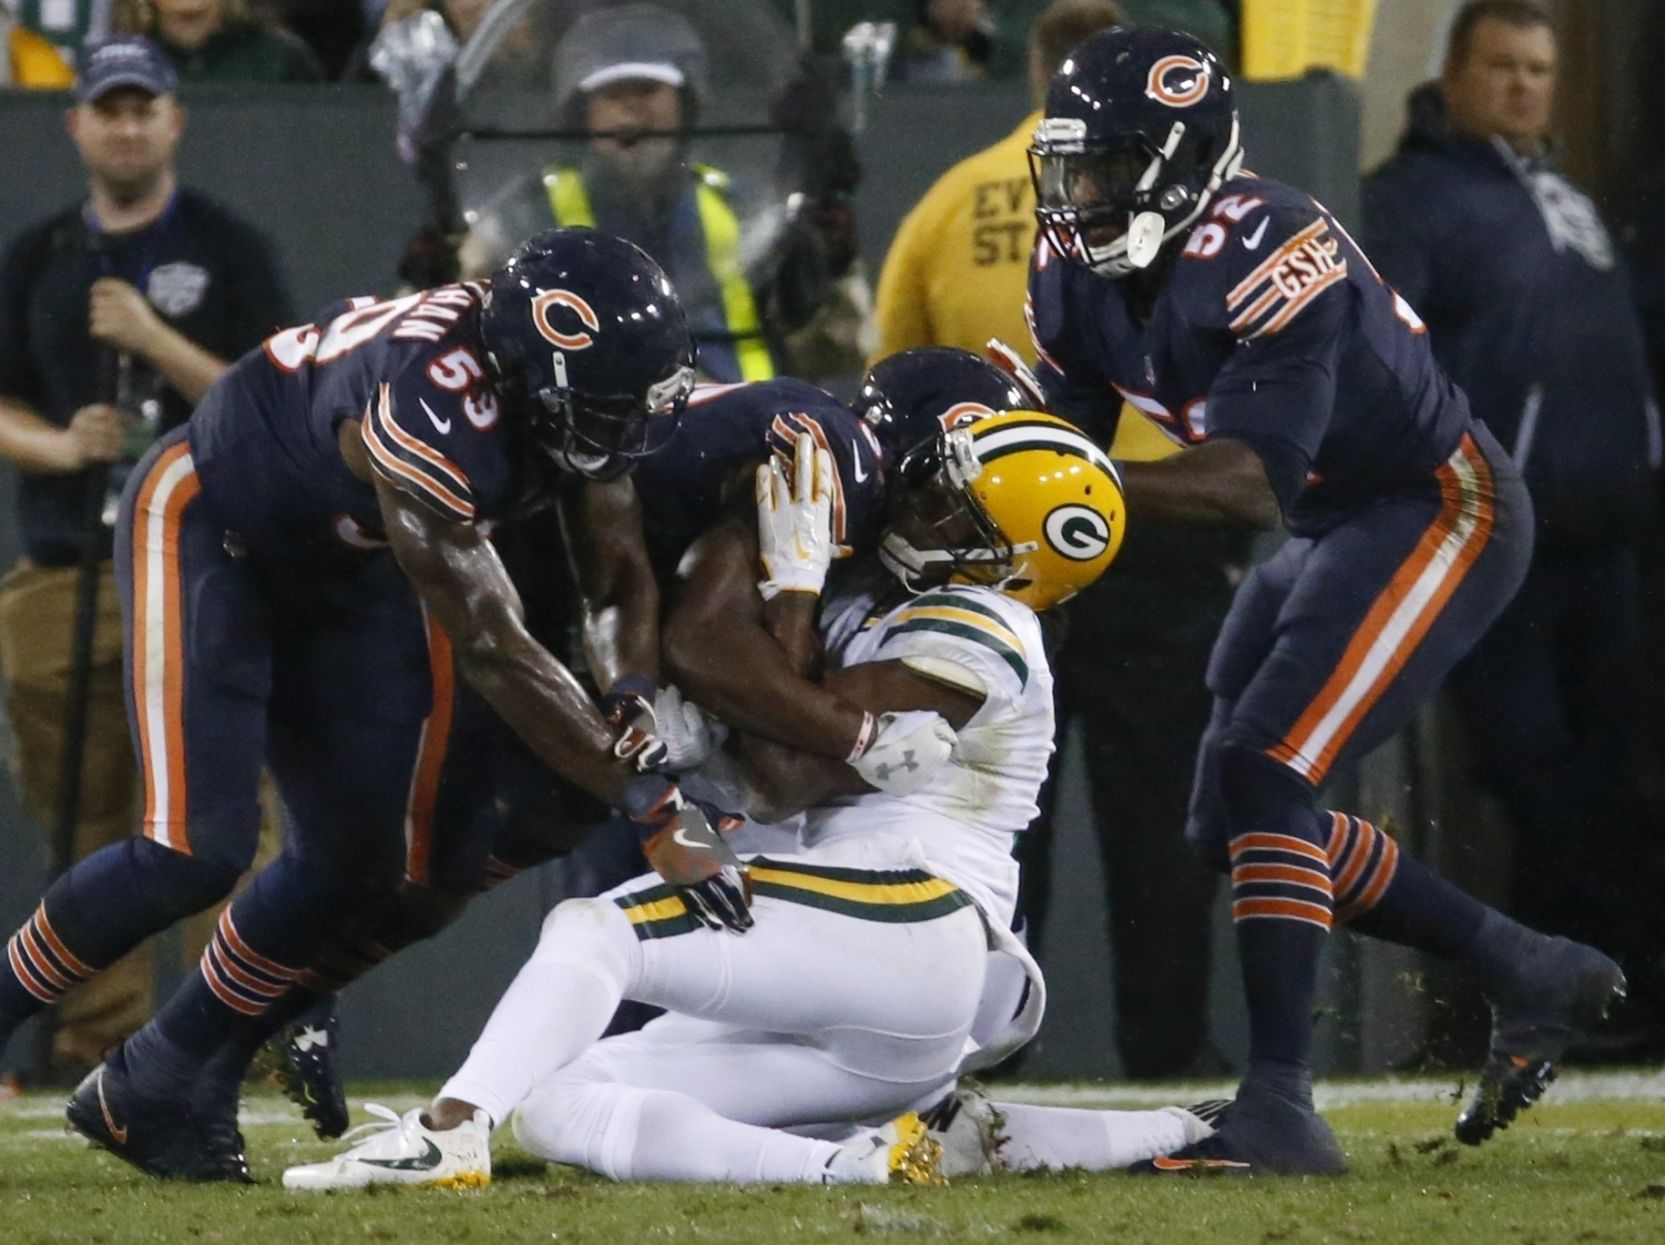 Davante Adams Carted Off Field After Vicious, Controversial Danny Trevathan Hit